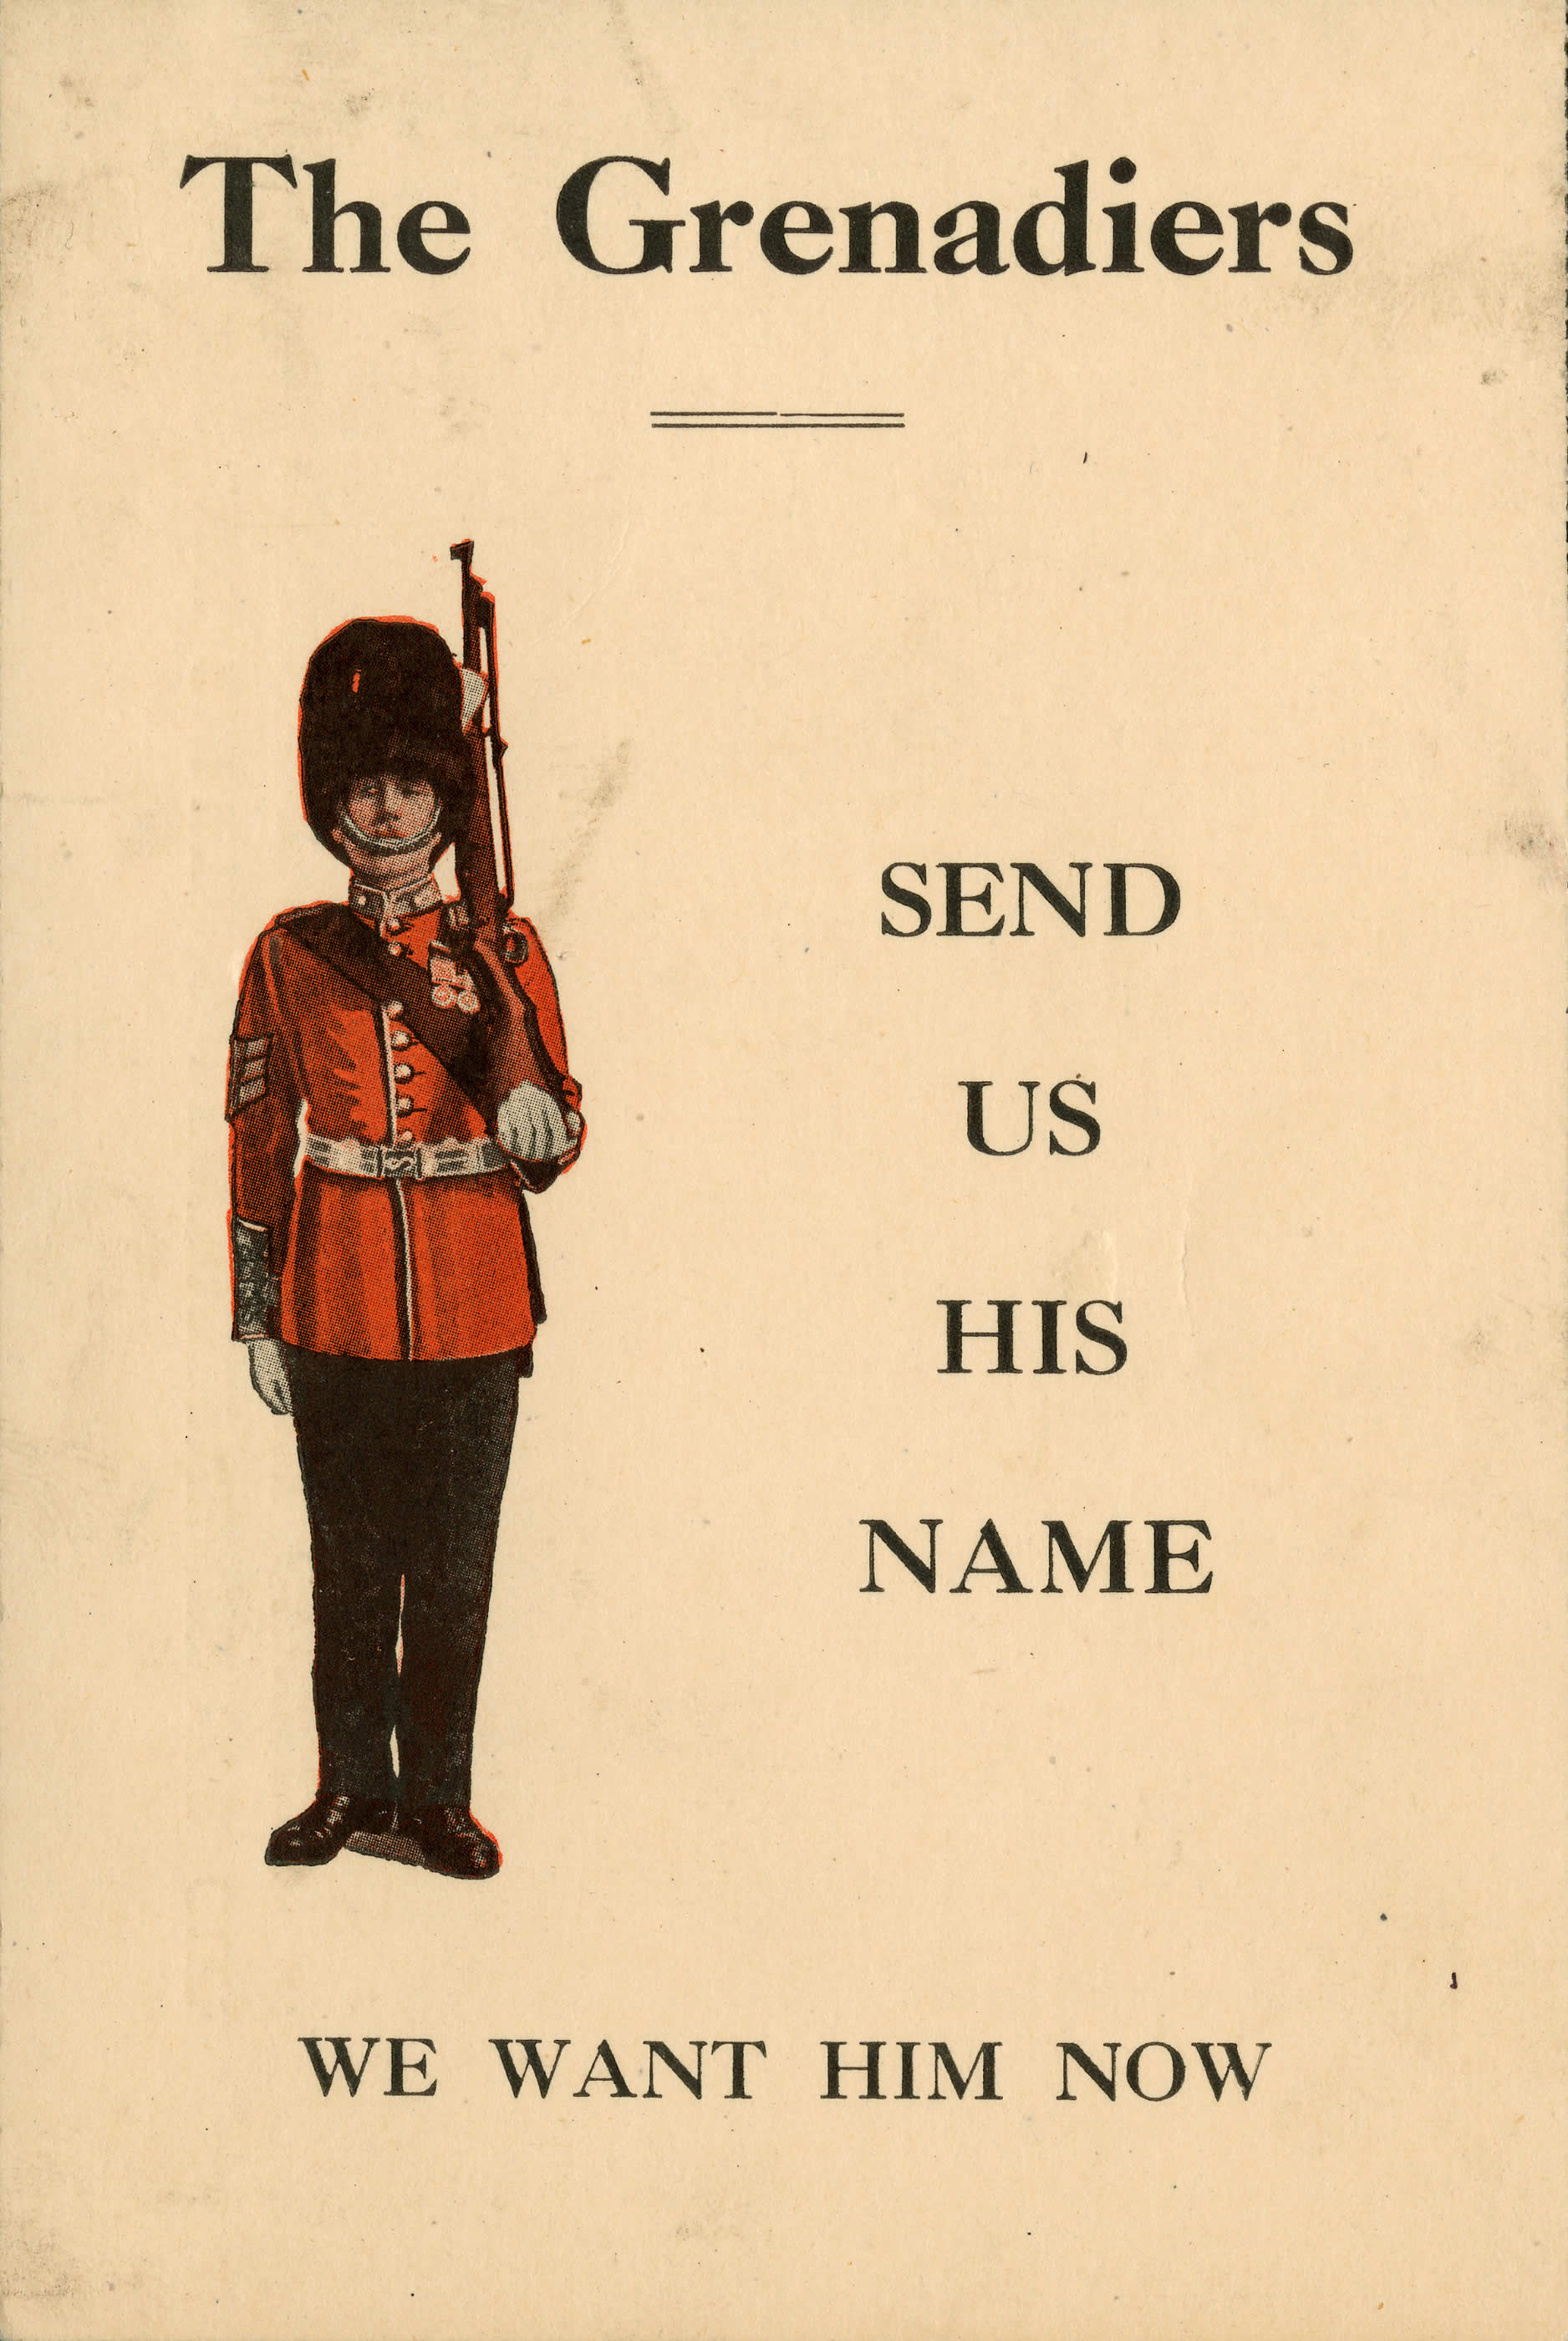 <i>Send Us His Name (Envoyez-nous son nom)</i>